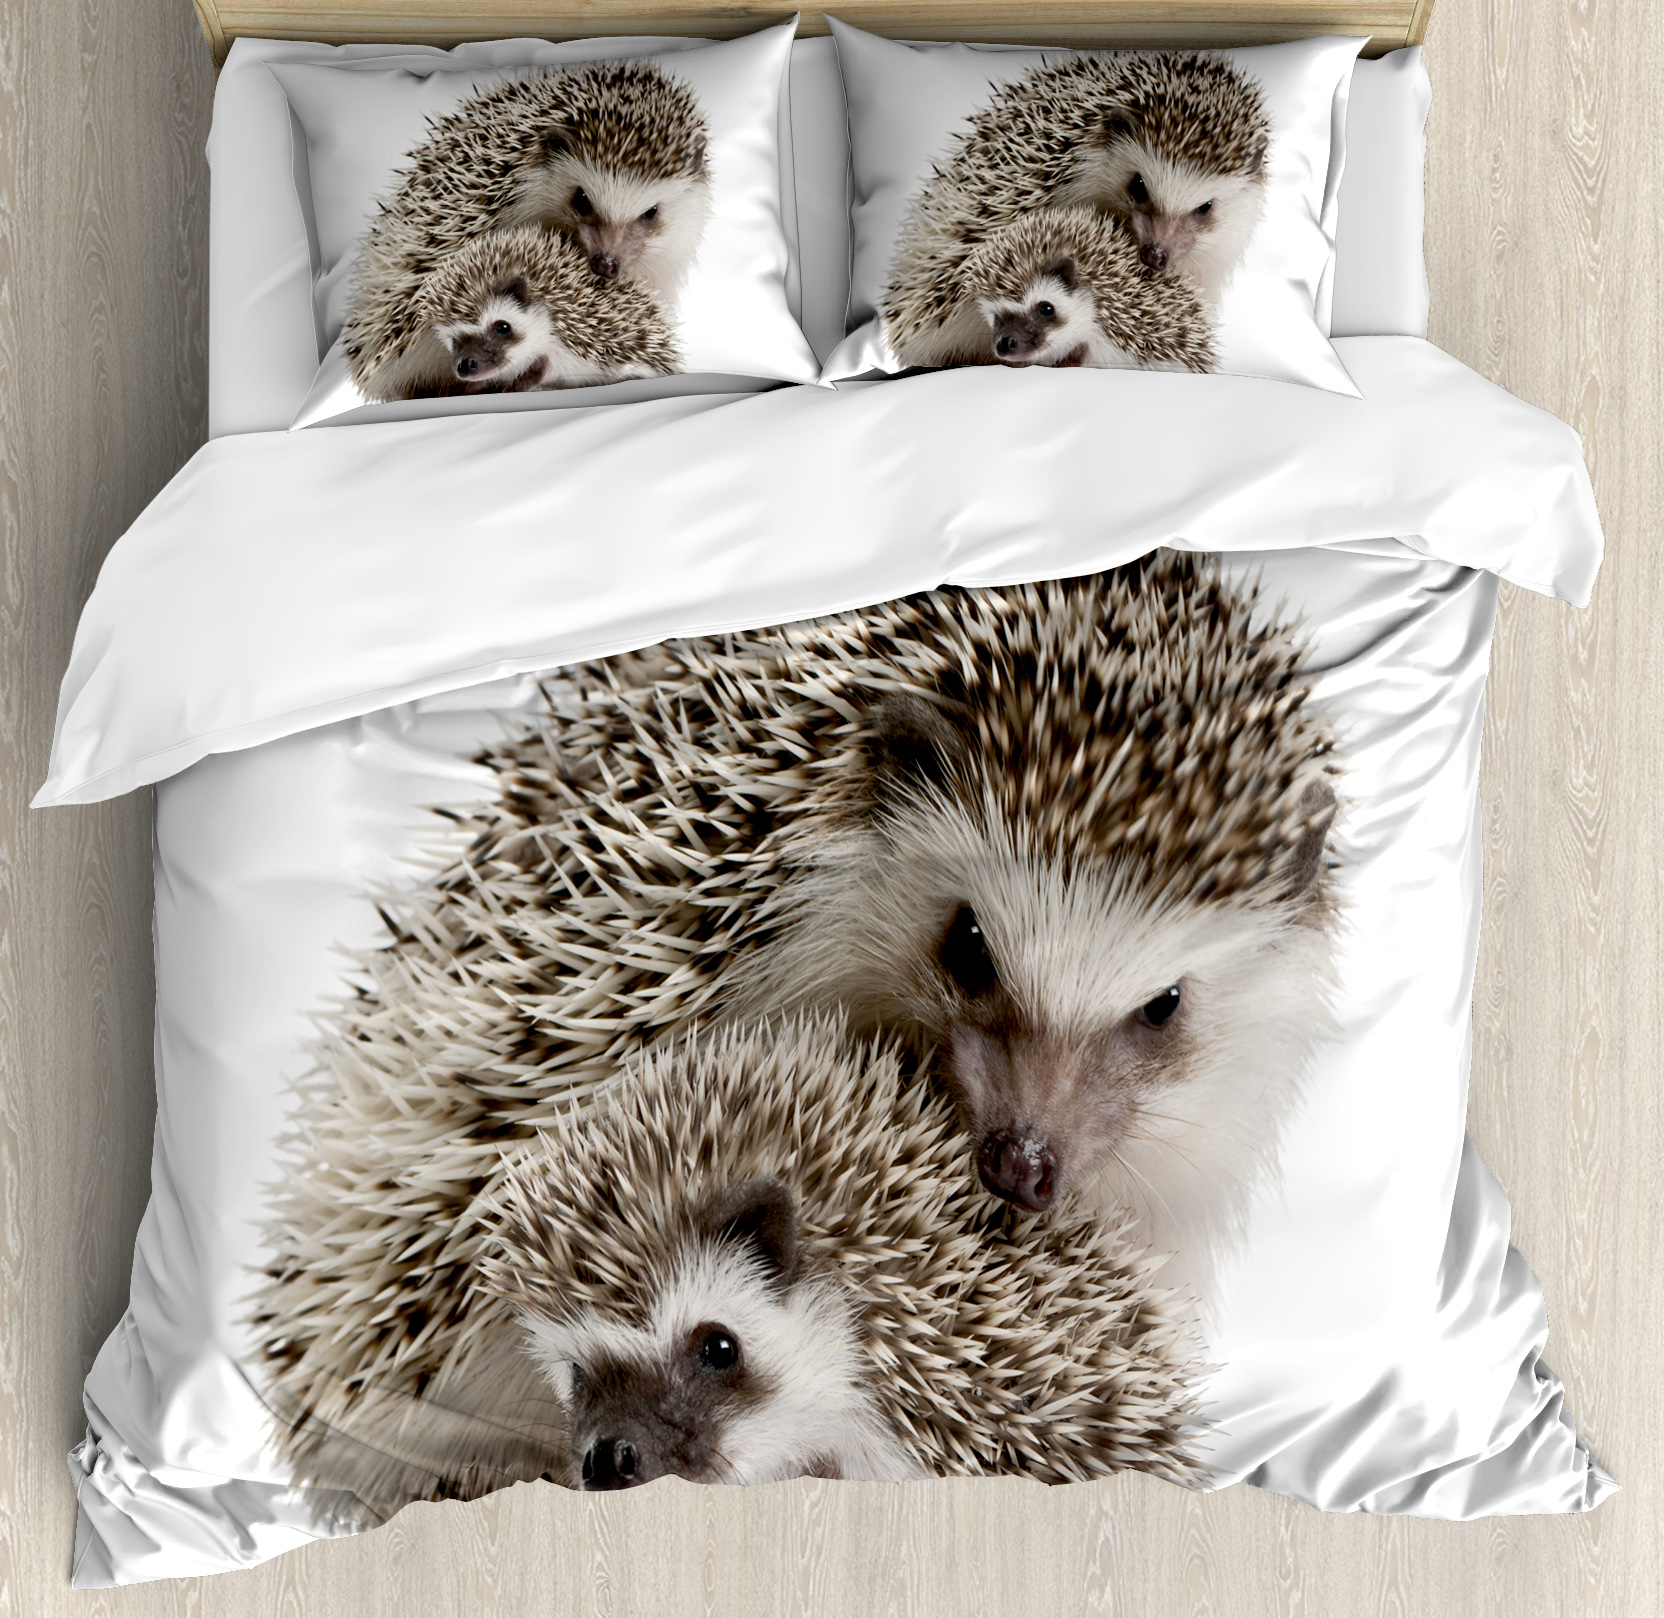 Hedgehog Queen Size Duvet Cover Set, Atelerix Albiventris Photography with Mother and Children Love and Family Theme, Decorative 3 Piece Bedding Set with 2 Pillow Shams, Brown Ivory, by Ambesonne